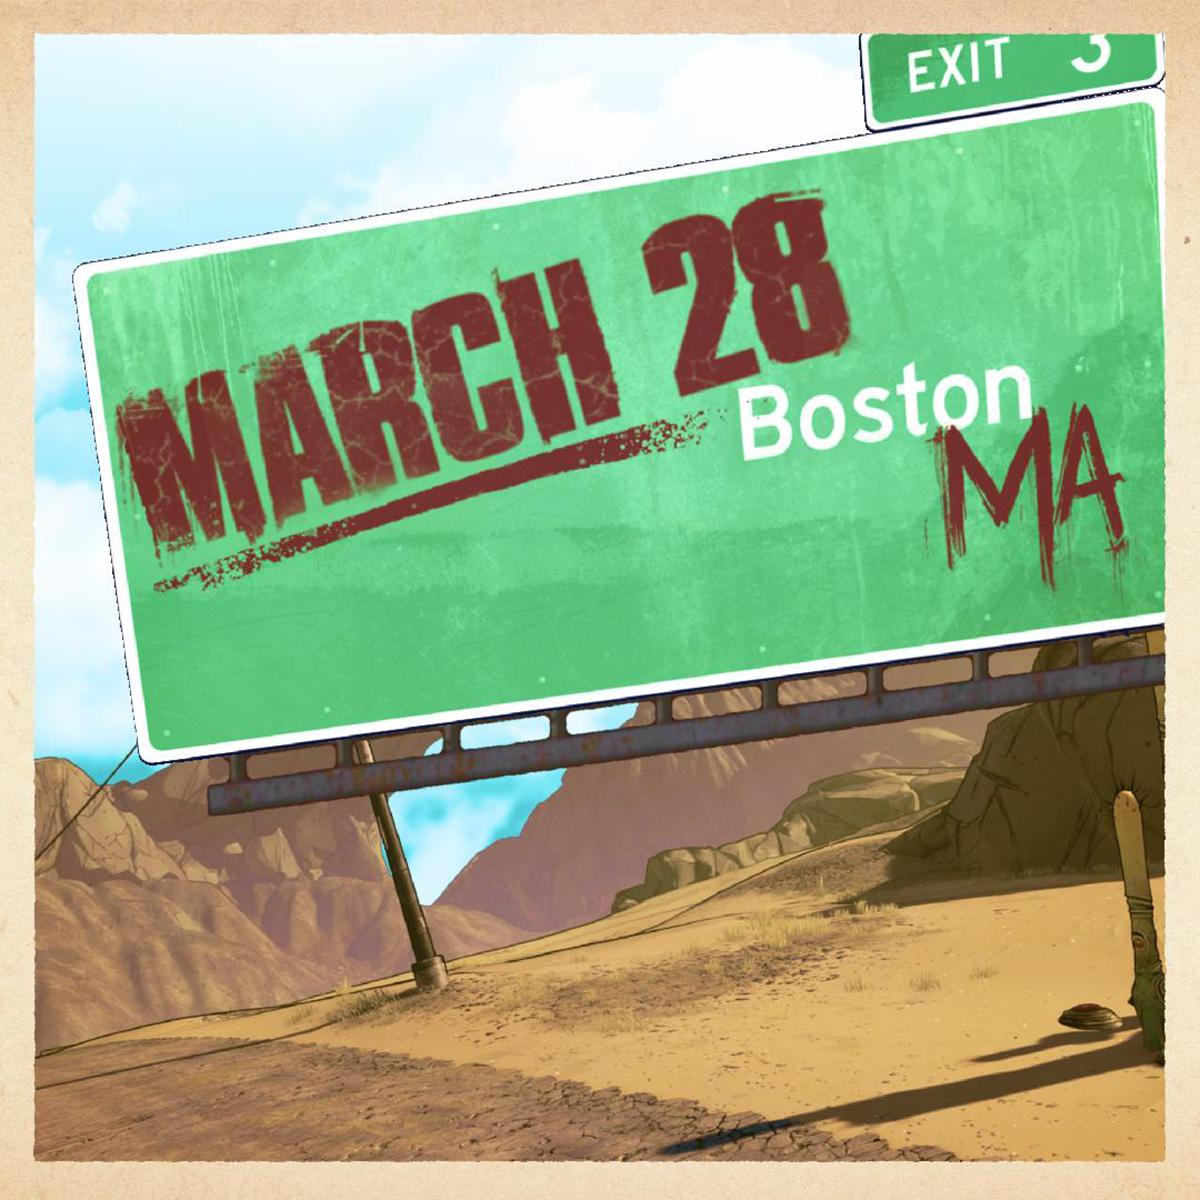 This week in games: Borderlands 3 teased for PAX East, Dwarf